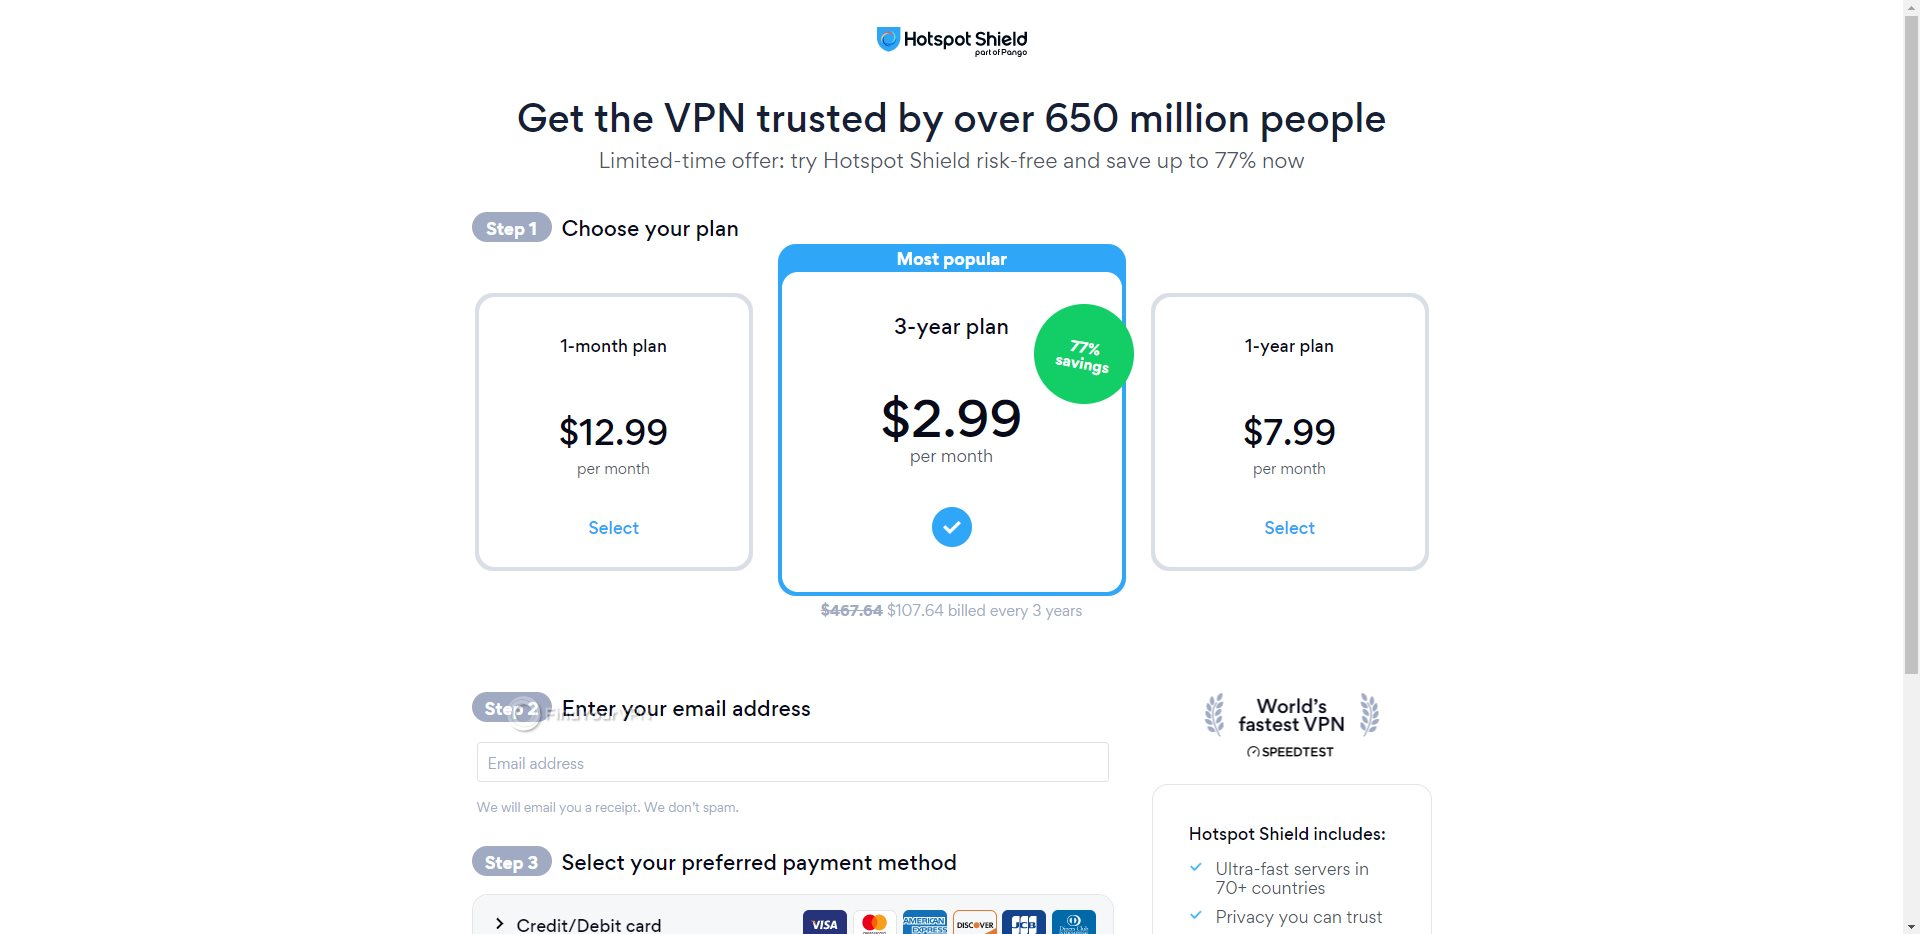 Hotspot Shield Subscription Tiers Page